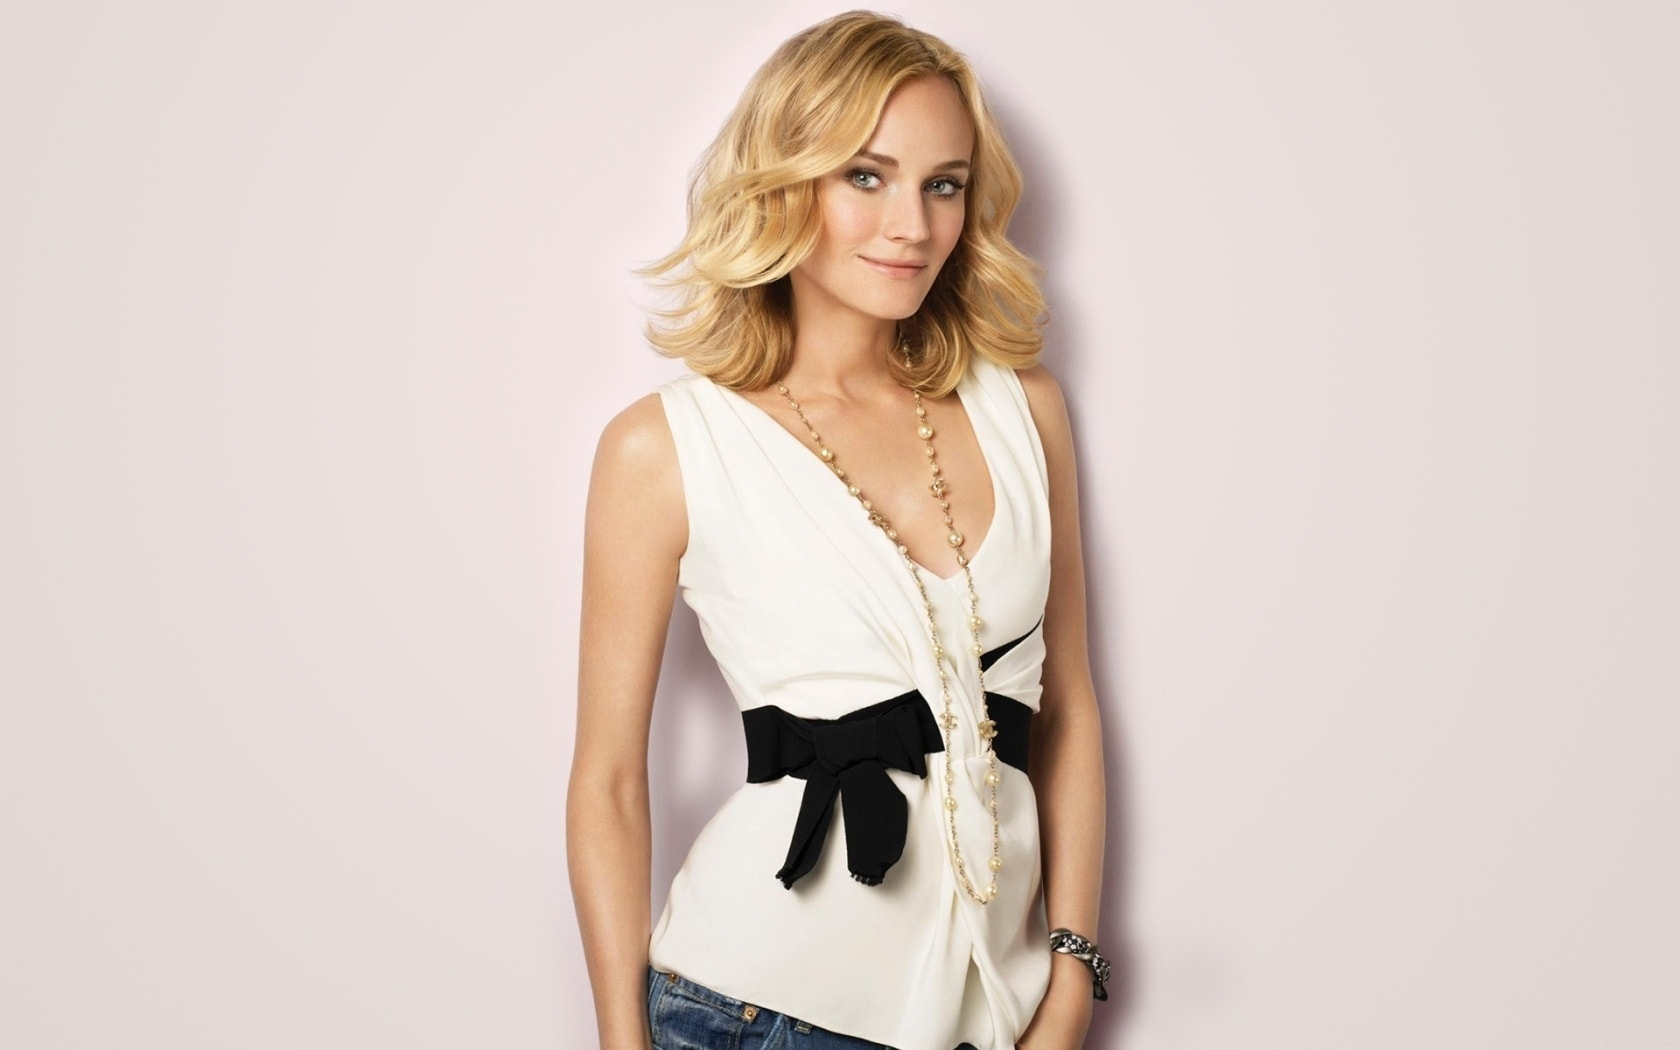 Diane Kruger Desktop wallpapers